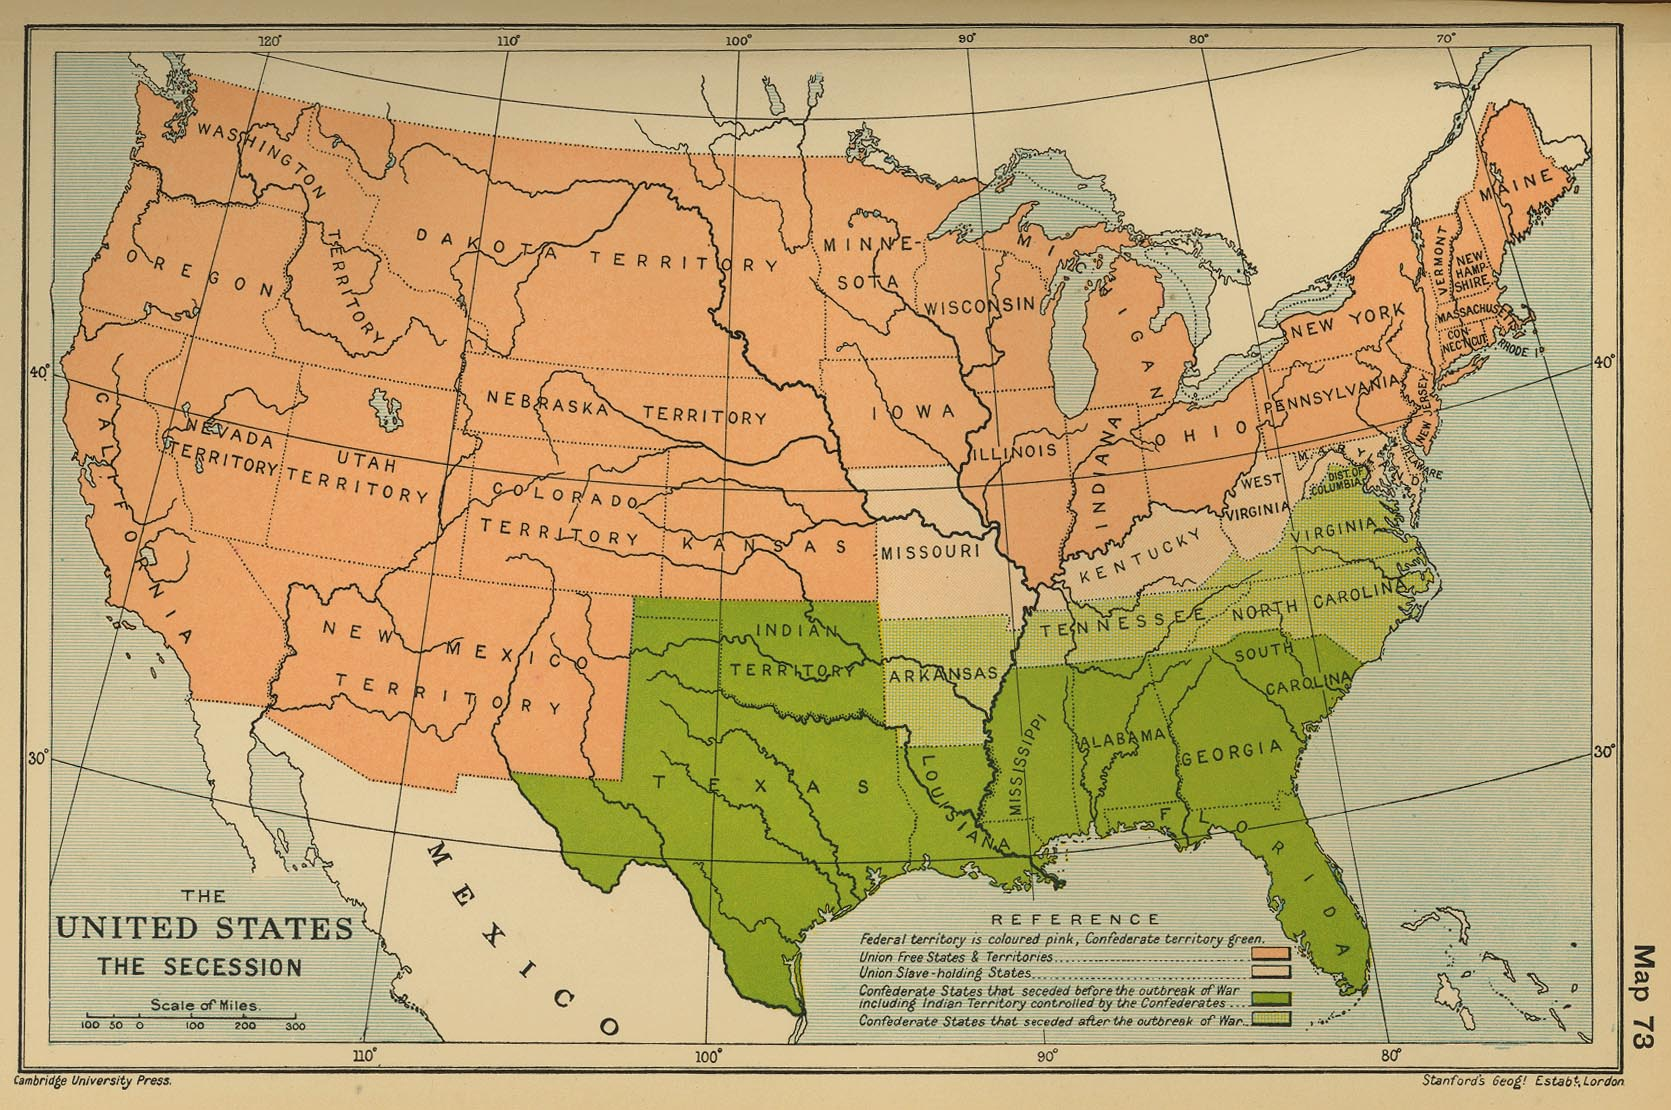 Map of the United States The Secession